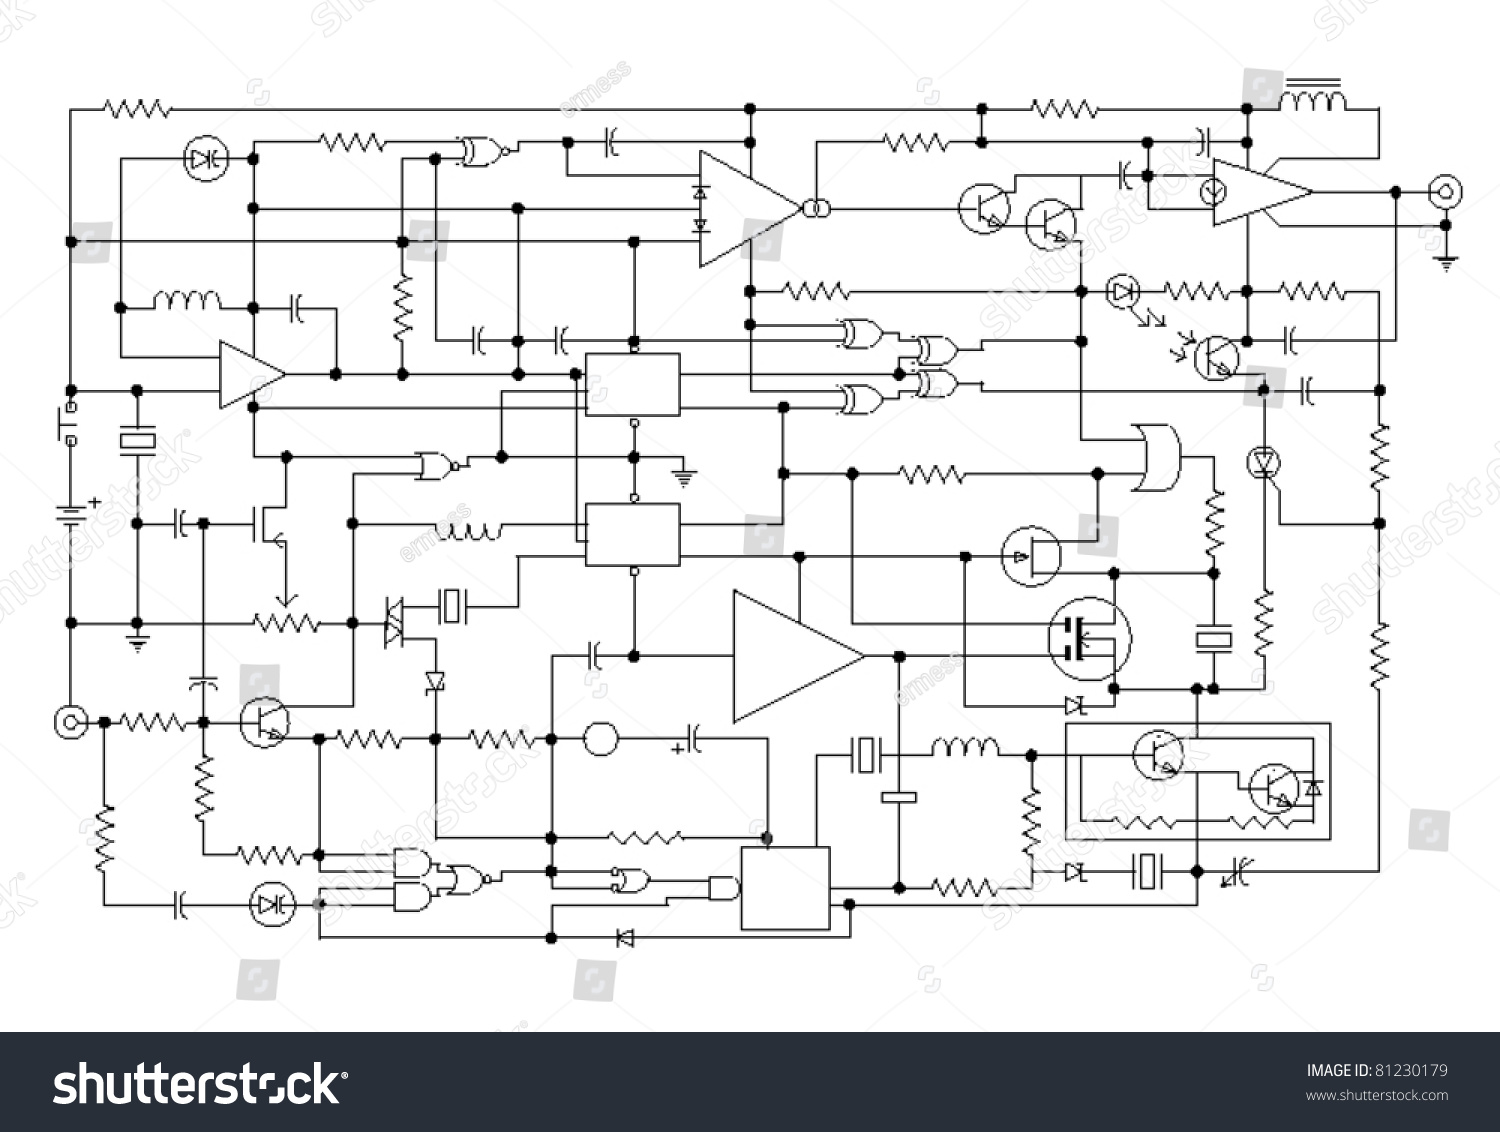 schematic diagram project electronic circuit graphic stock vector schematic diagram project of electronic circuit graphic design of electronic components and semiconductor